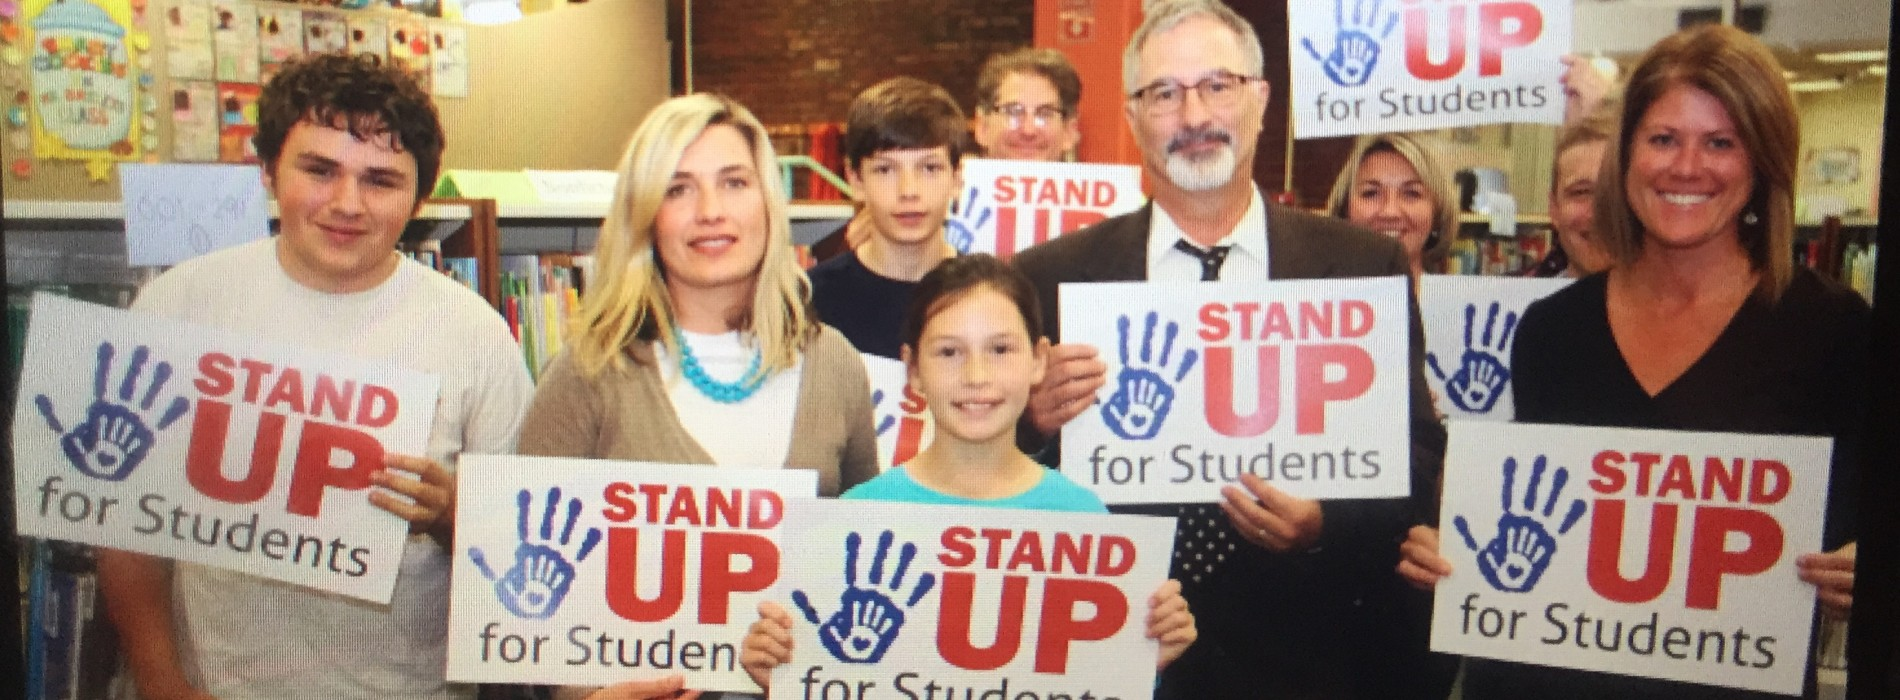 Citizen initiative launched to tax wealthy, invest in Maine schools